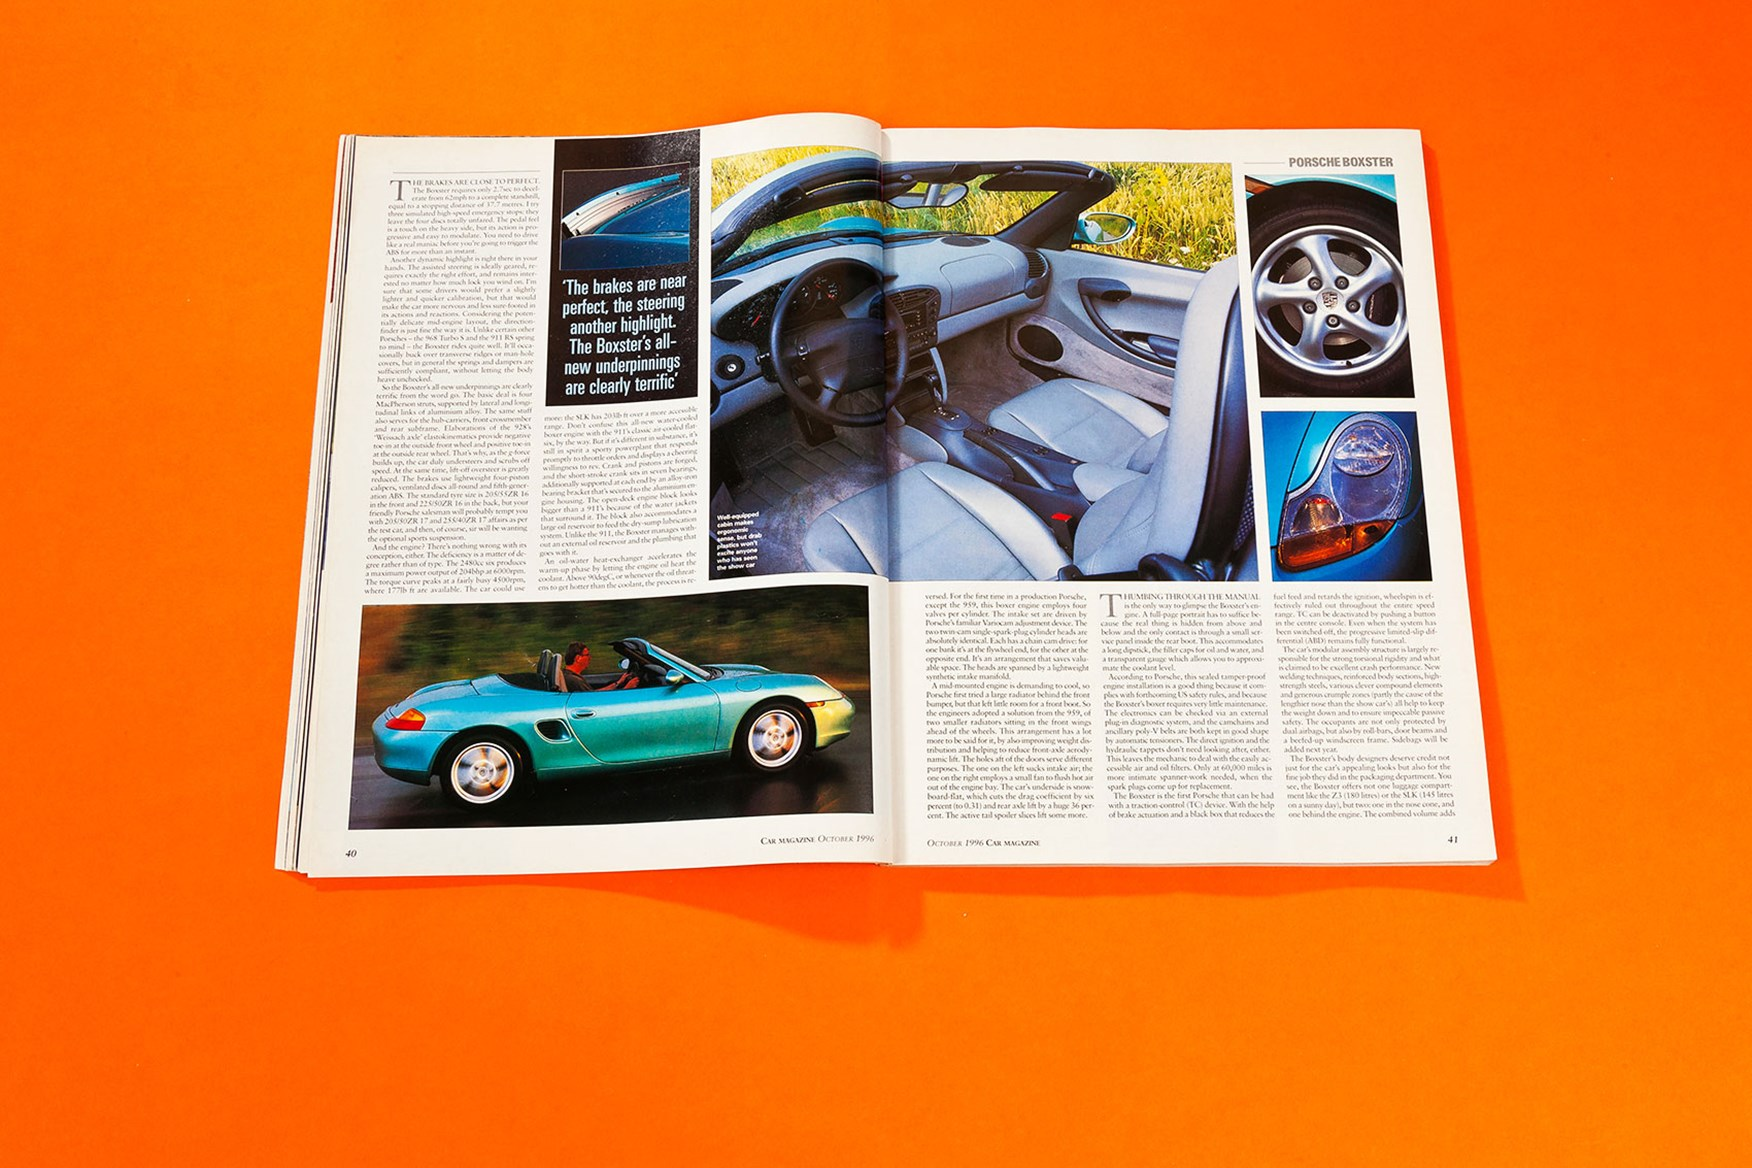 Seconds Out When We First Drove The Porsche Boxster Car Magazine October 1996 By Car Magazine